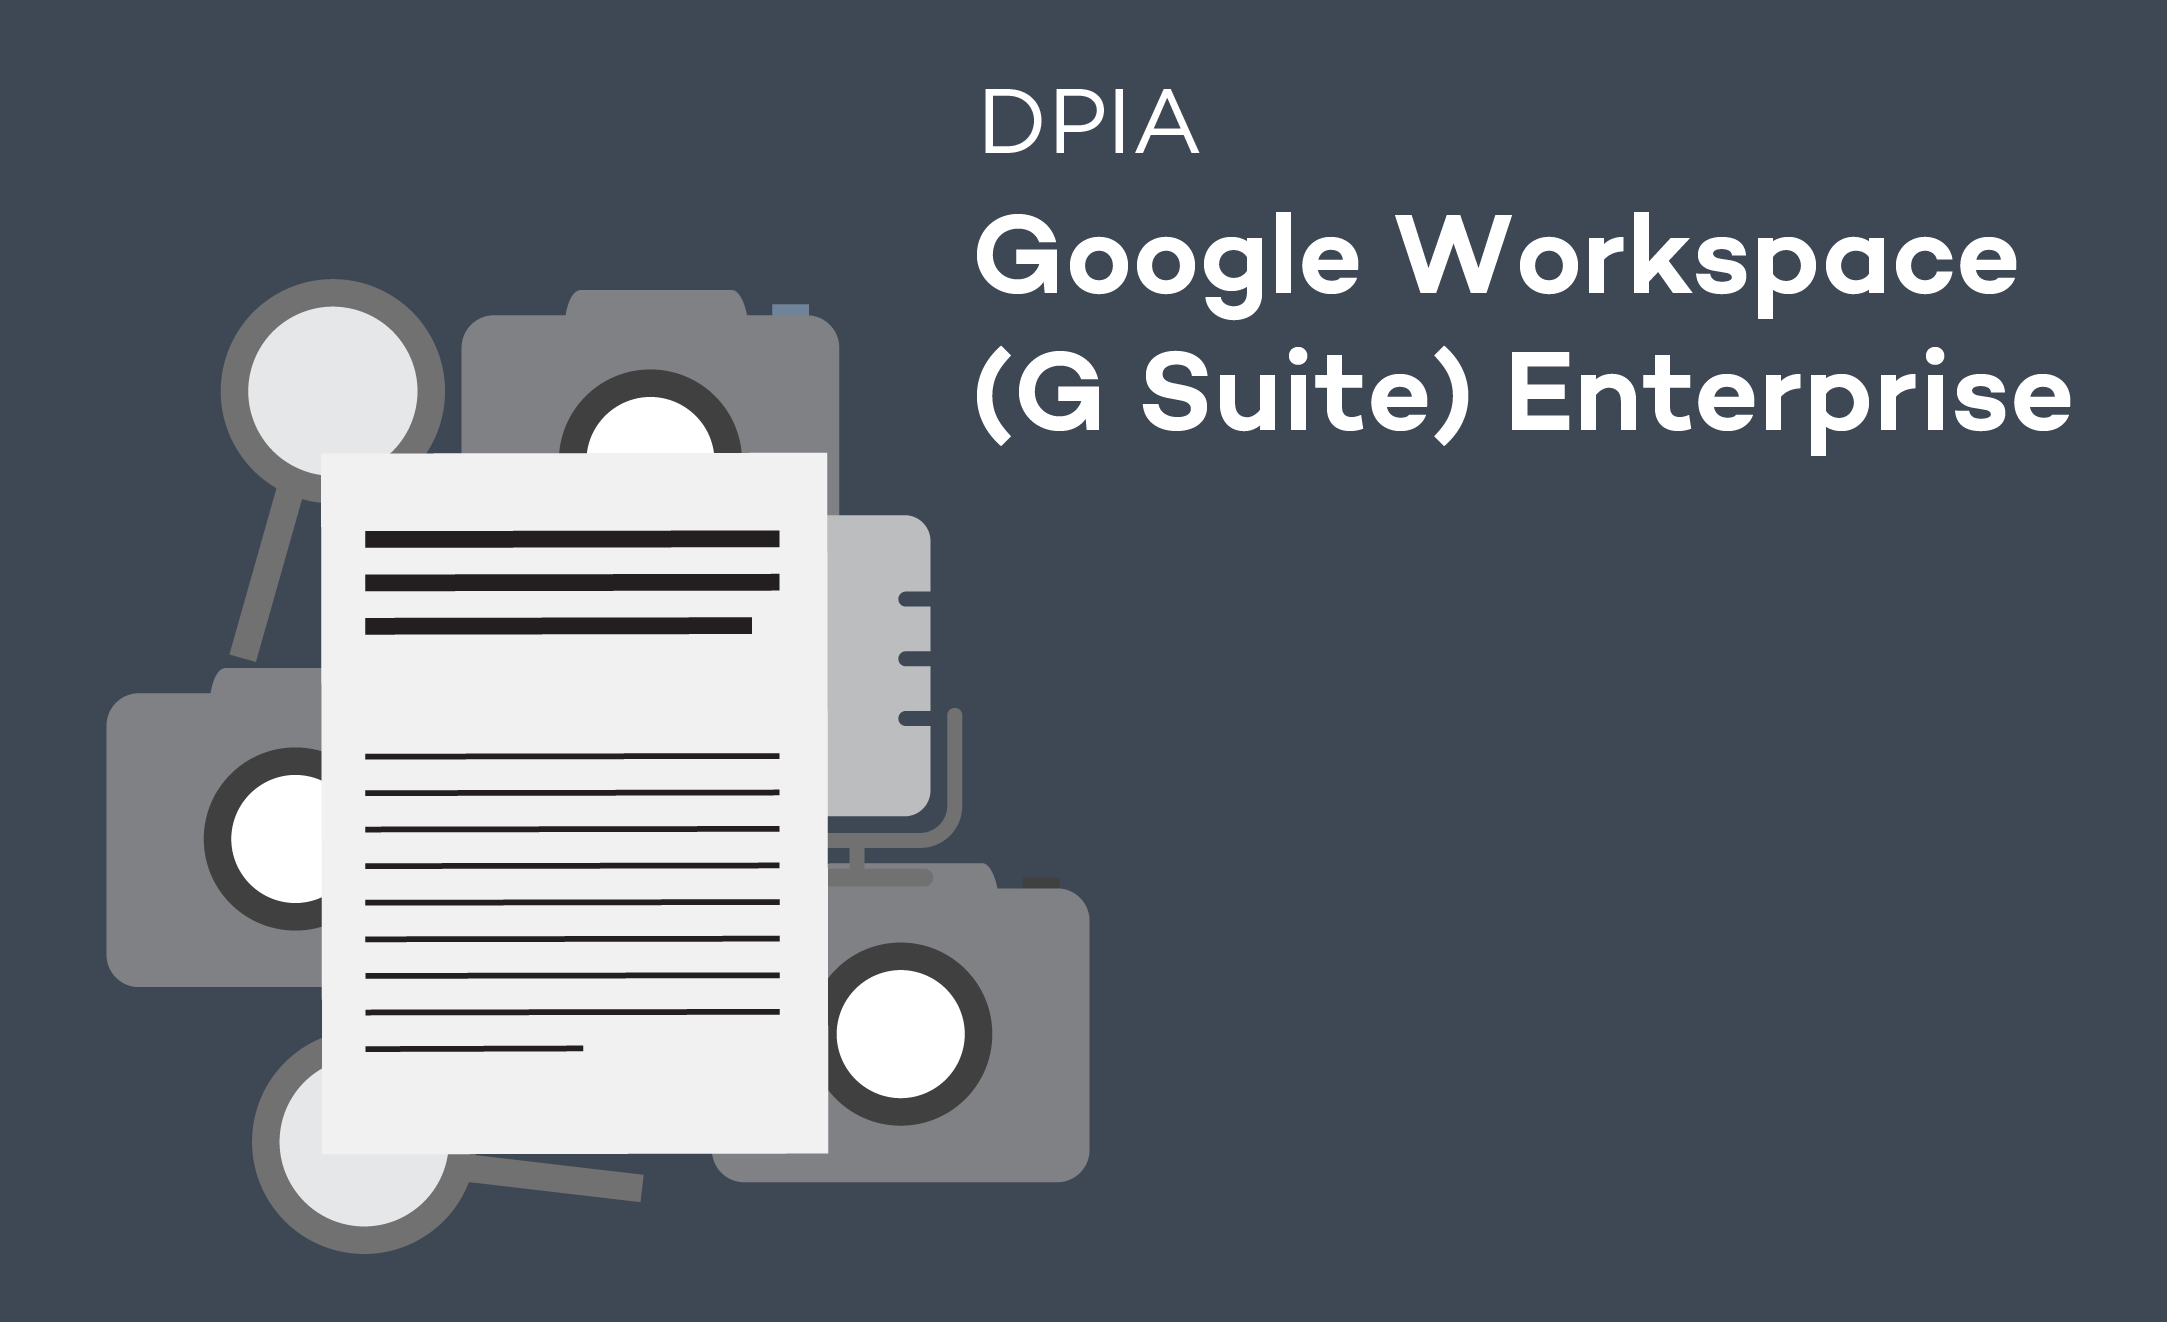 Privacy assessment Google Workspace (G Suite) Enterprise : Dutch government consults Dutch Data Protection Authority on high privacy risks